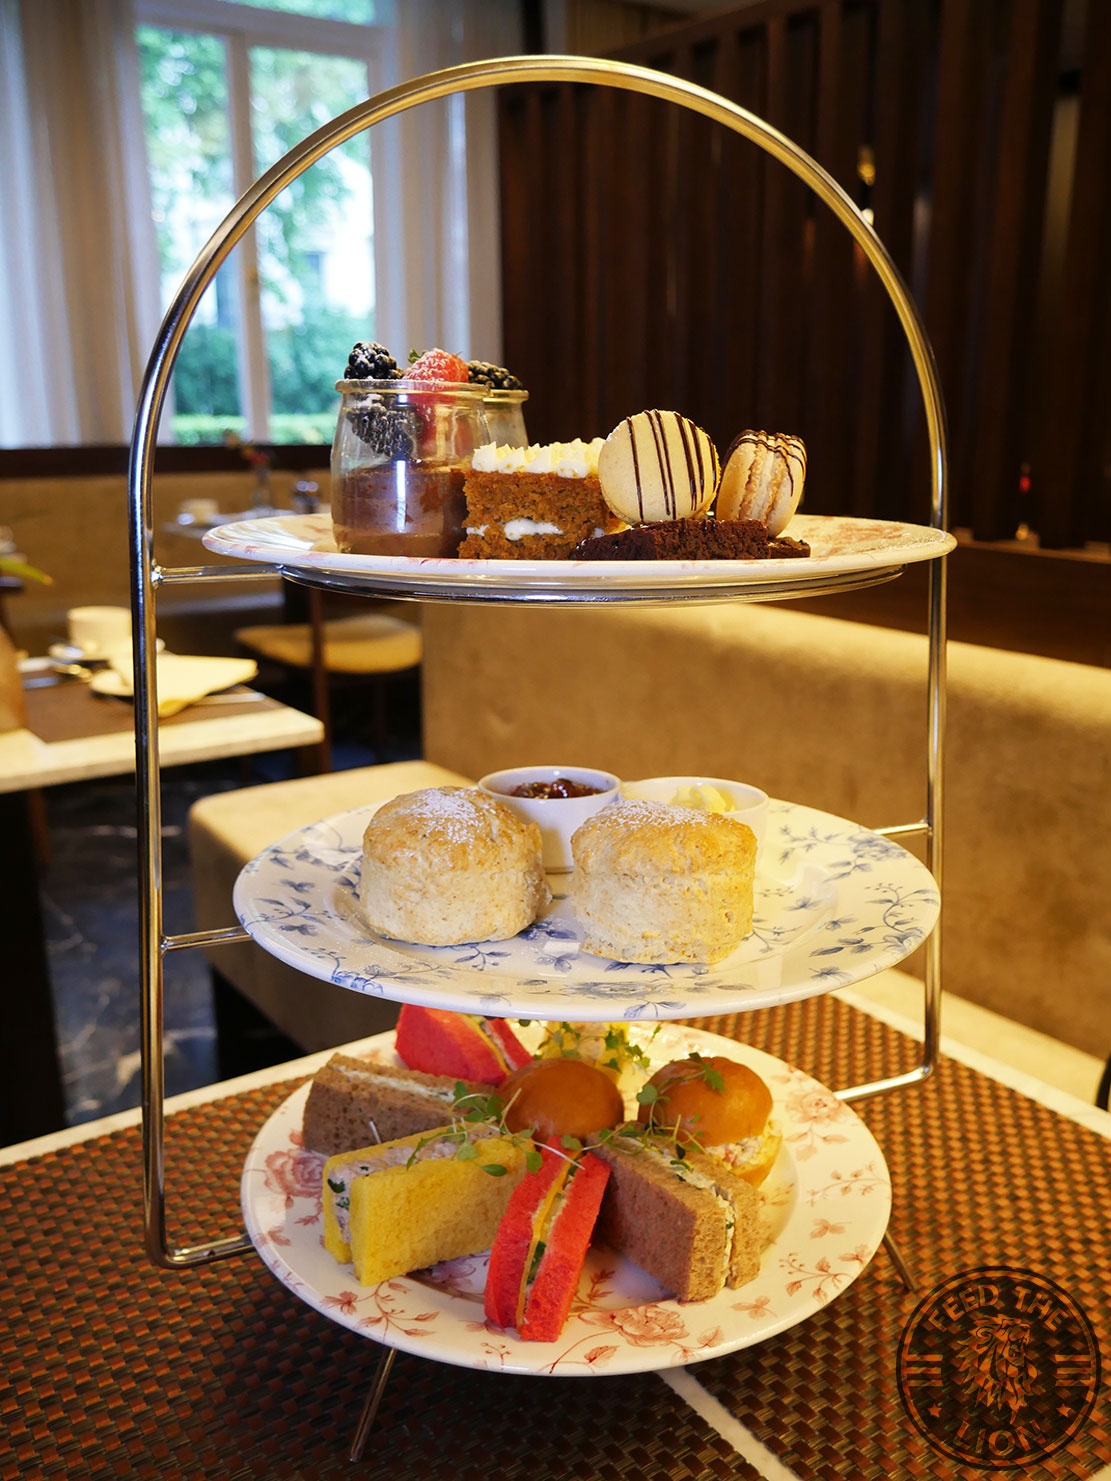 Halal English Afternoon Tea at The Chilworth Hotel Paddington<br>Tear 1: Chocolate moose, lemon tart, coffee eclairs, carrot and walnut cake, macarons.<br>Tear 2: plain scones.<br>Tear 3: Tuna mayo sandwich on carrot bread, hummus with cucumber and cheese in beetroot bread, egg & watercress sandwich on brown ray bread, chicken and pepper brioche.